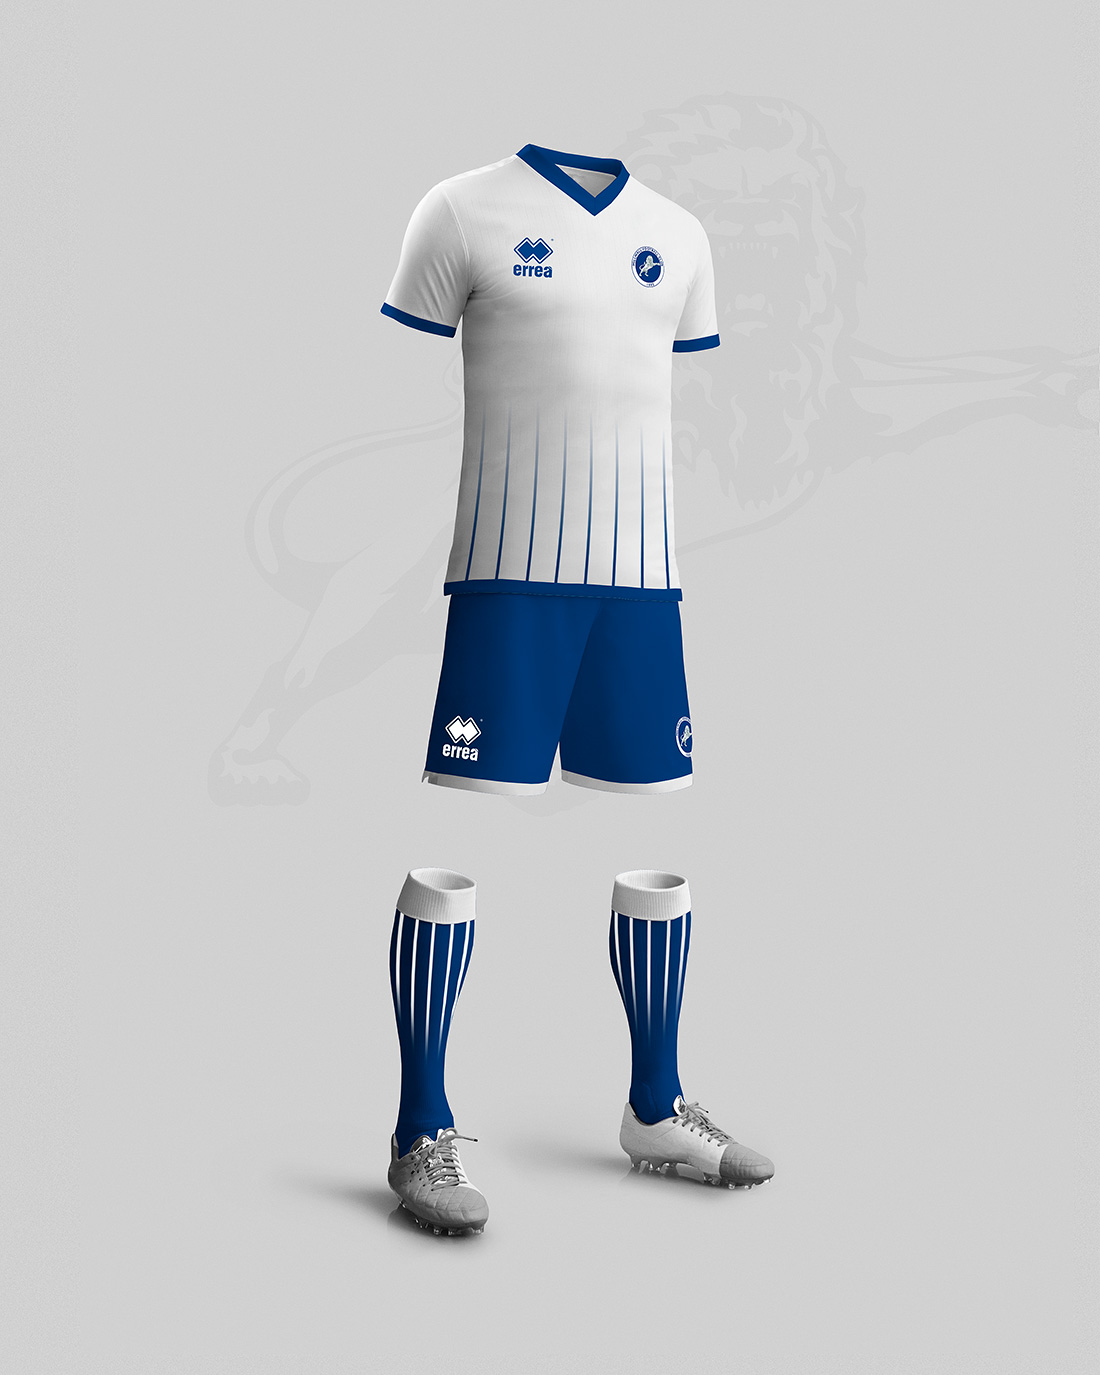 Stroje piłkarskie Millwall away kit design